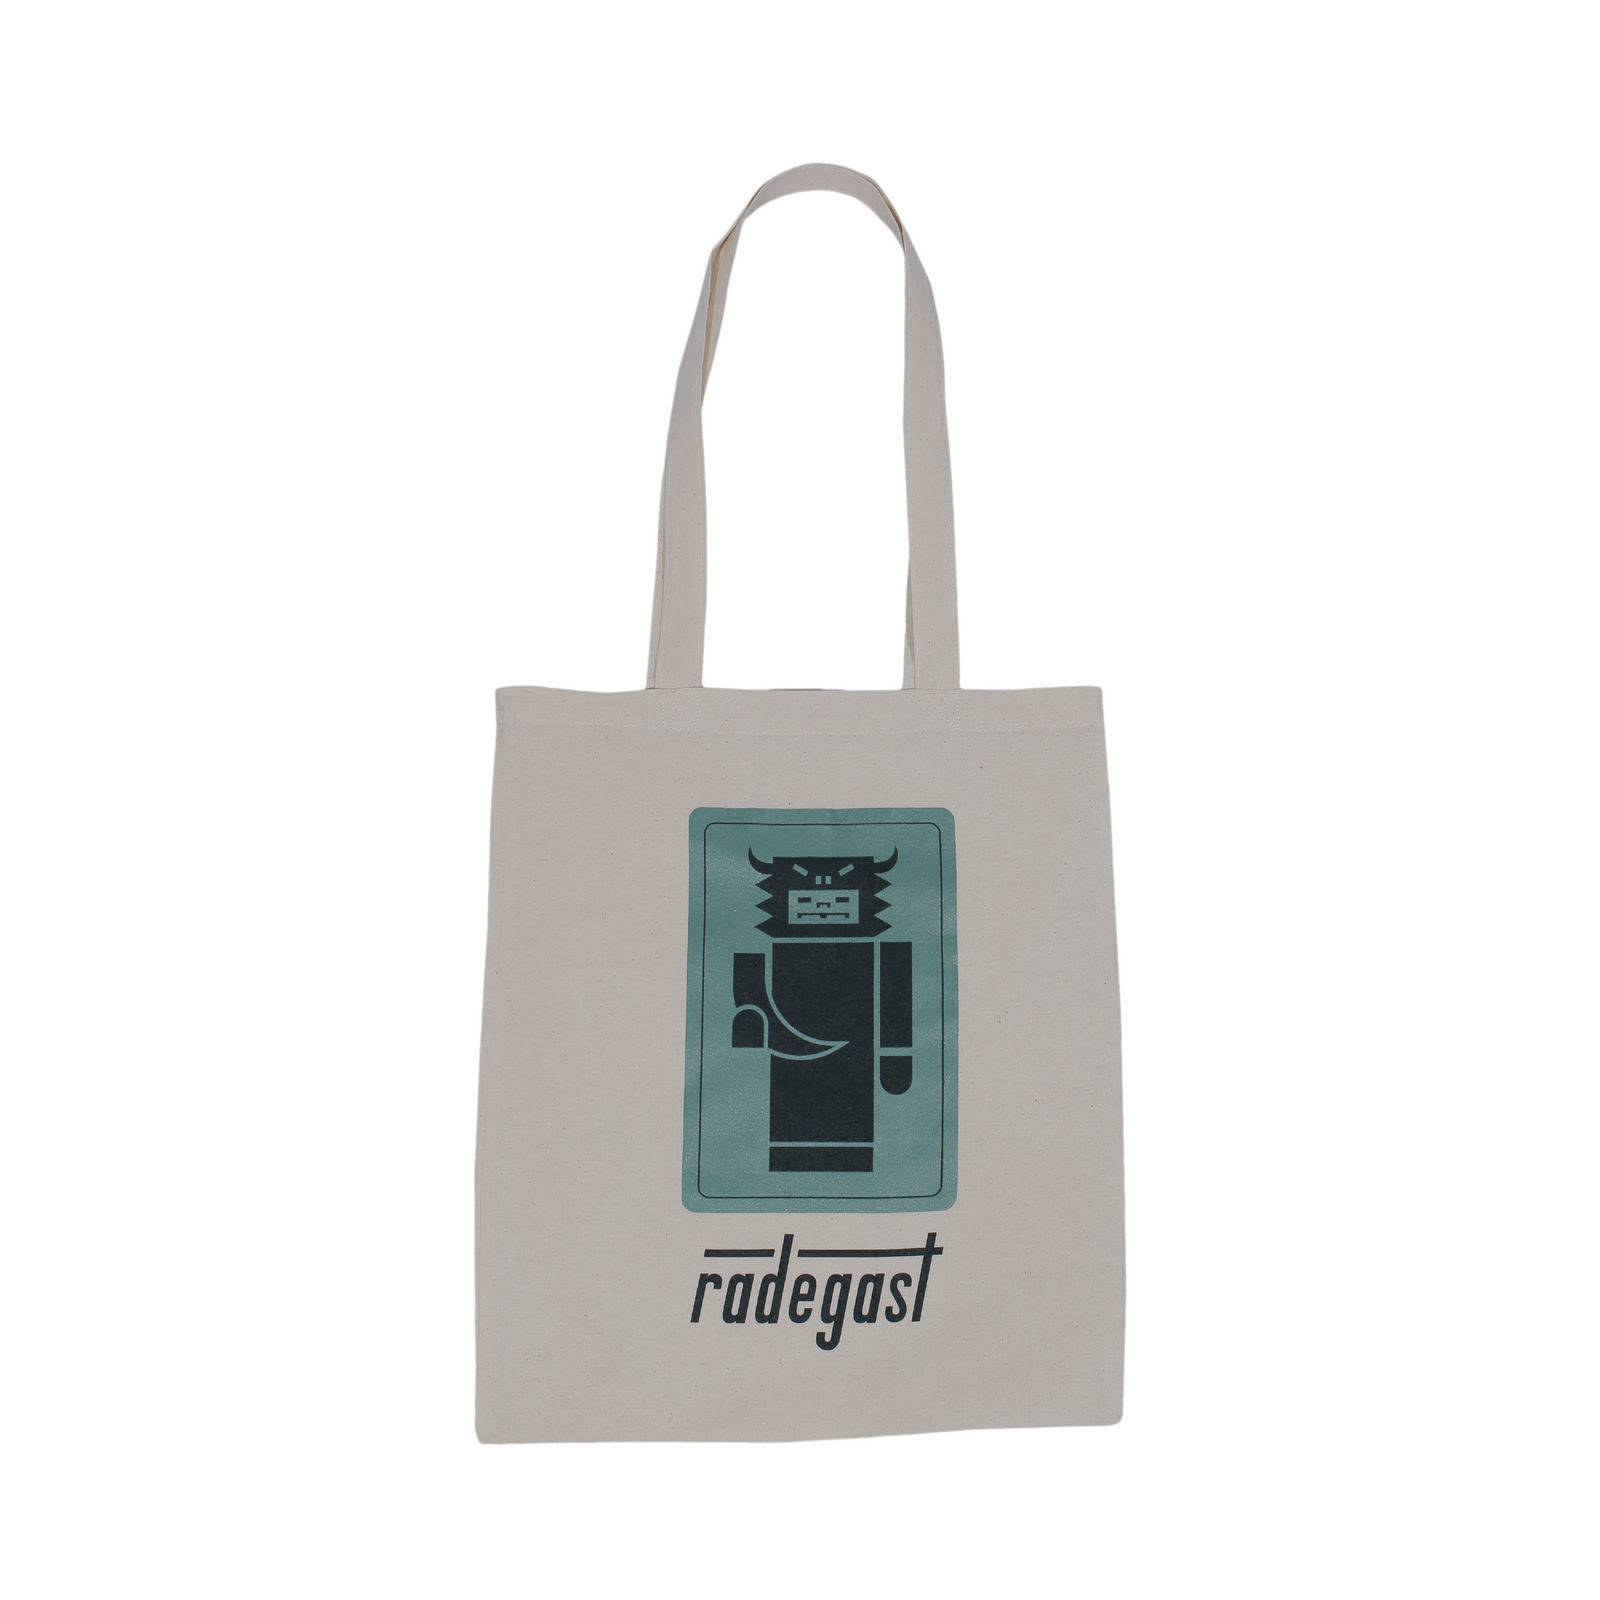 Radegast cotton bag